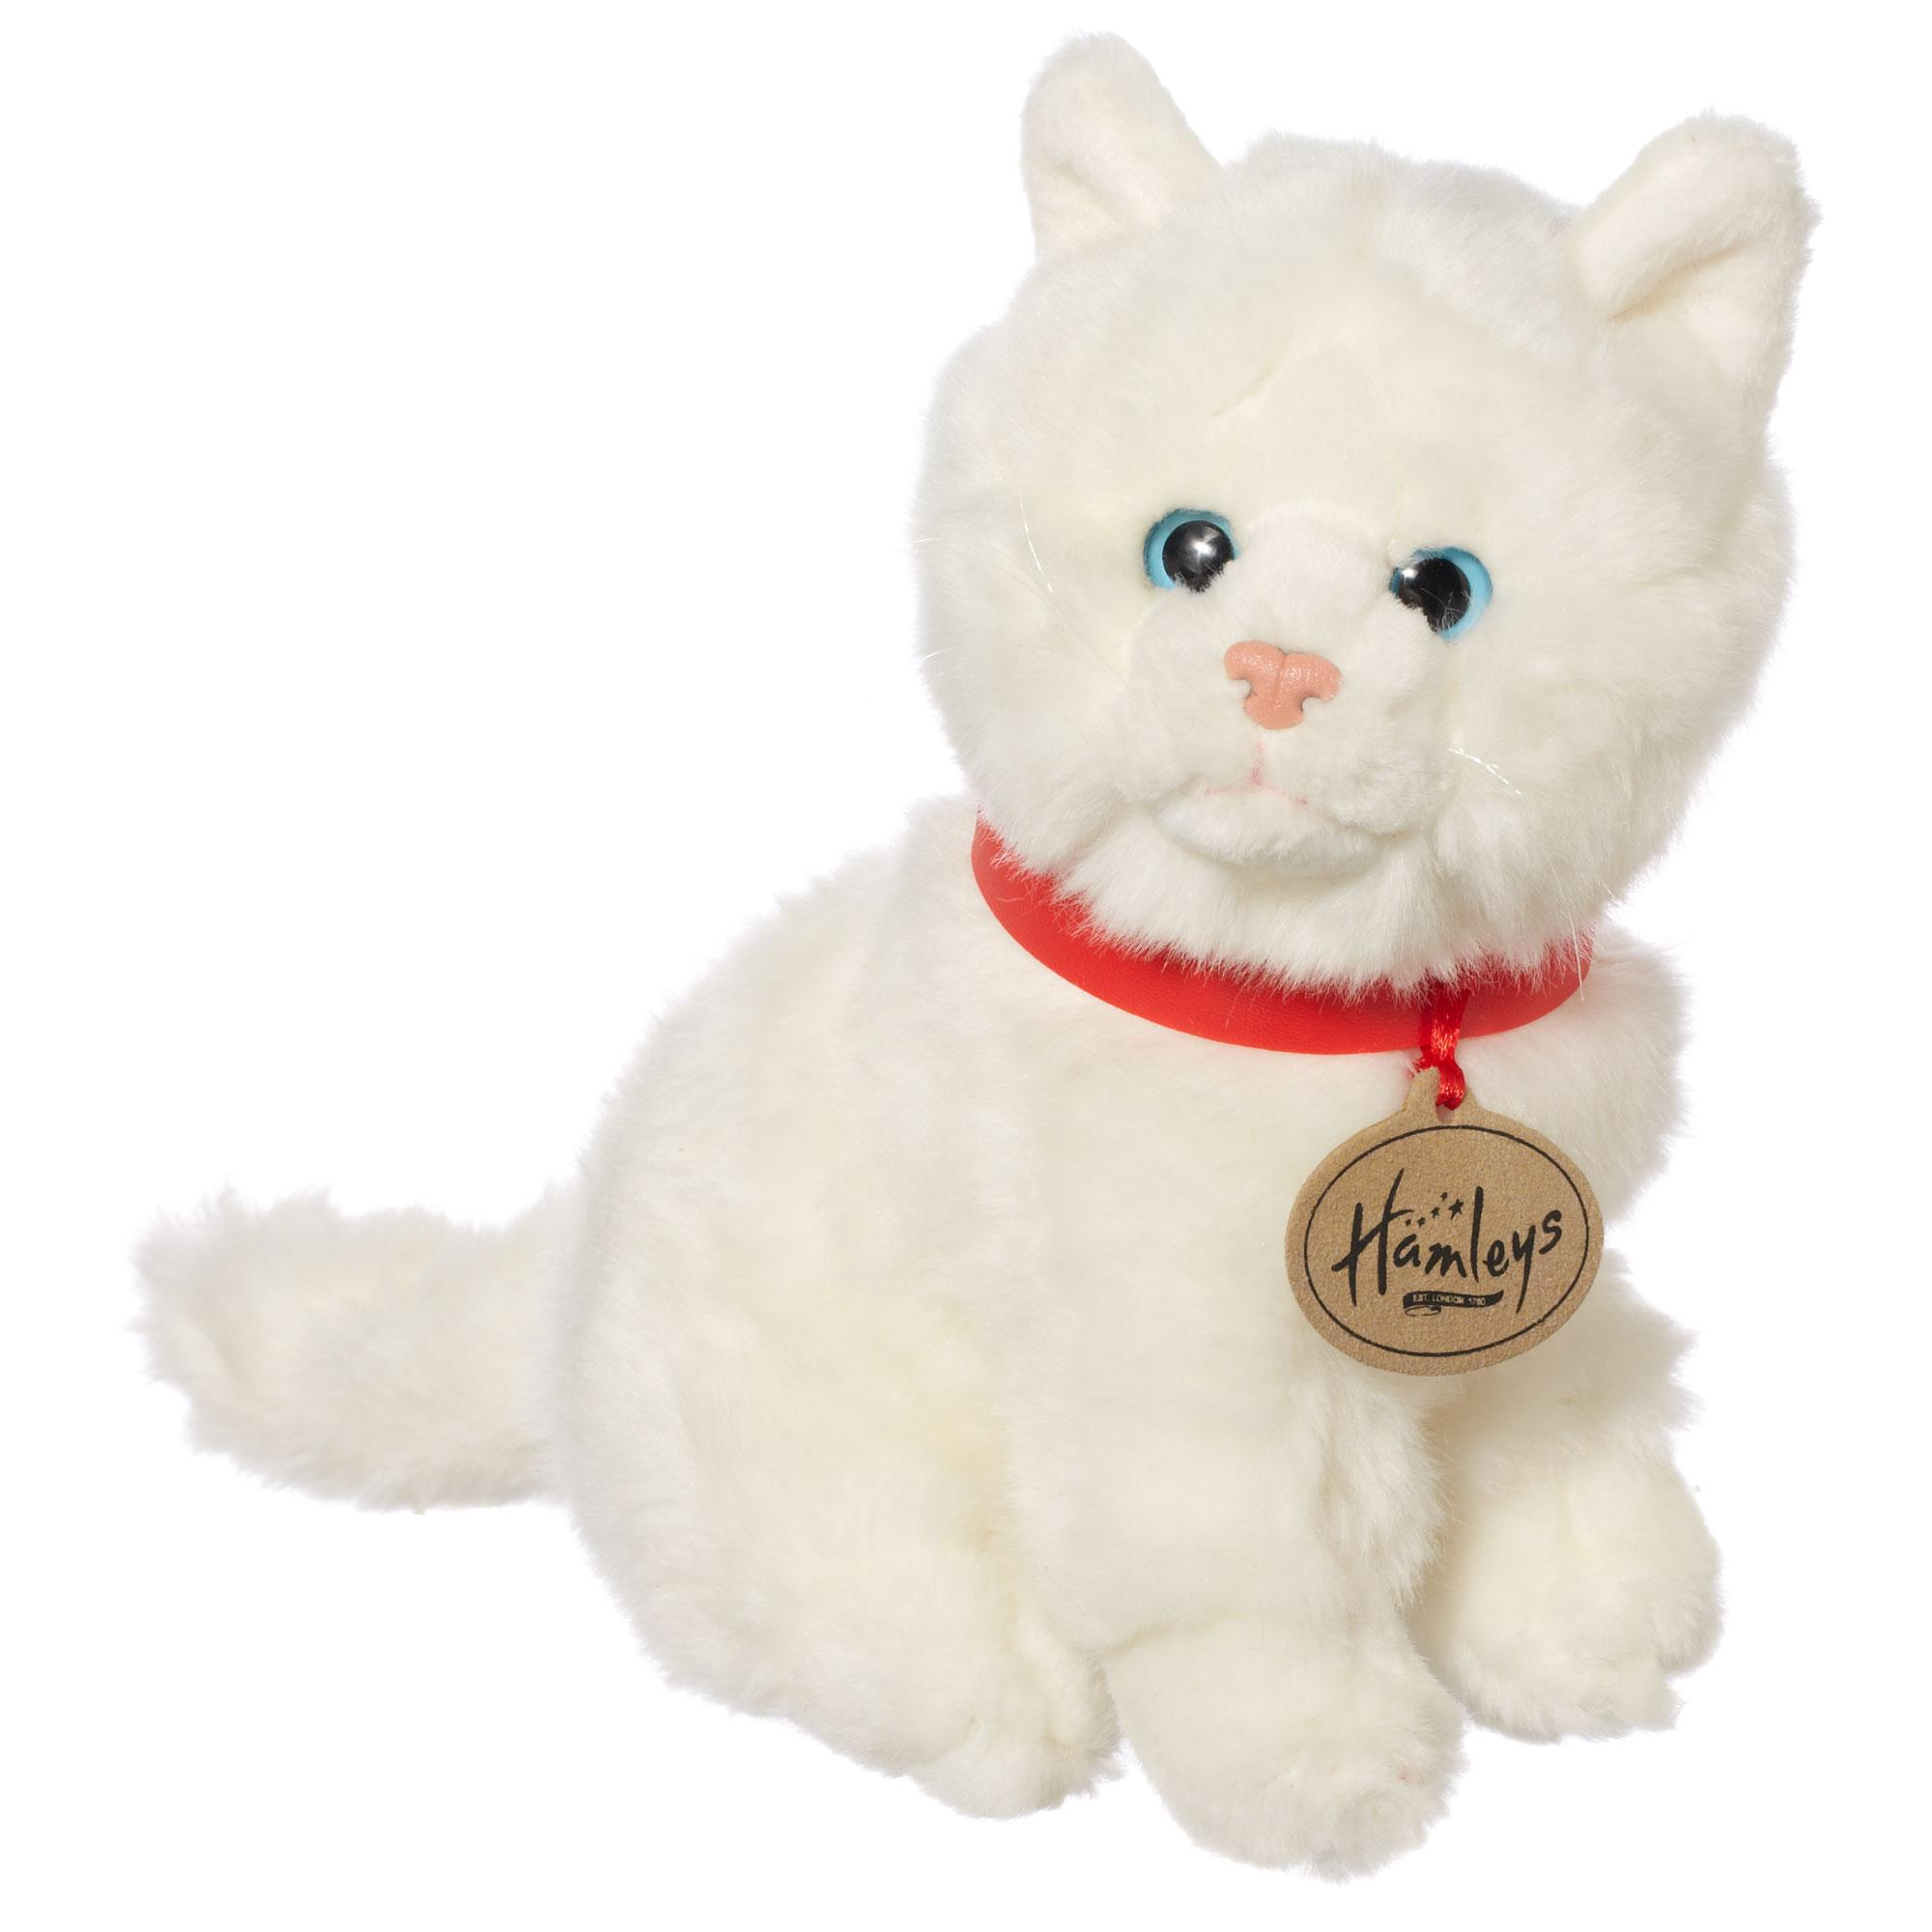 Hamleys Sitting White Cat Soft Toy - £15.00 - Hamleys for Toys and Games